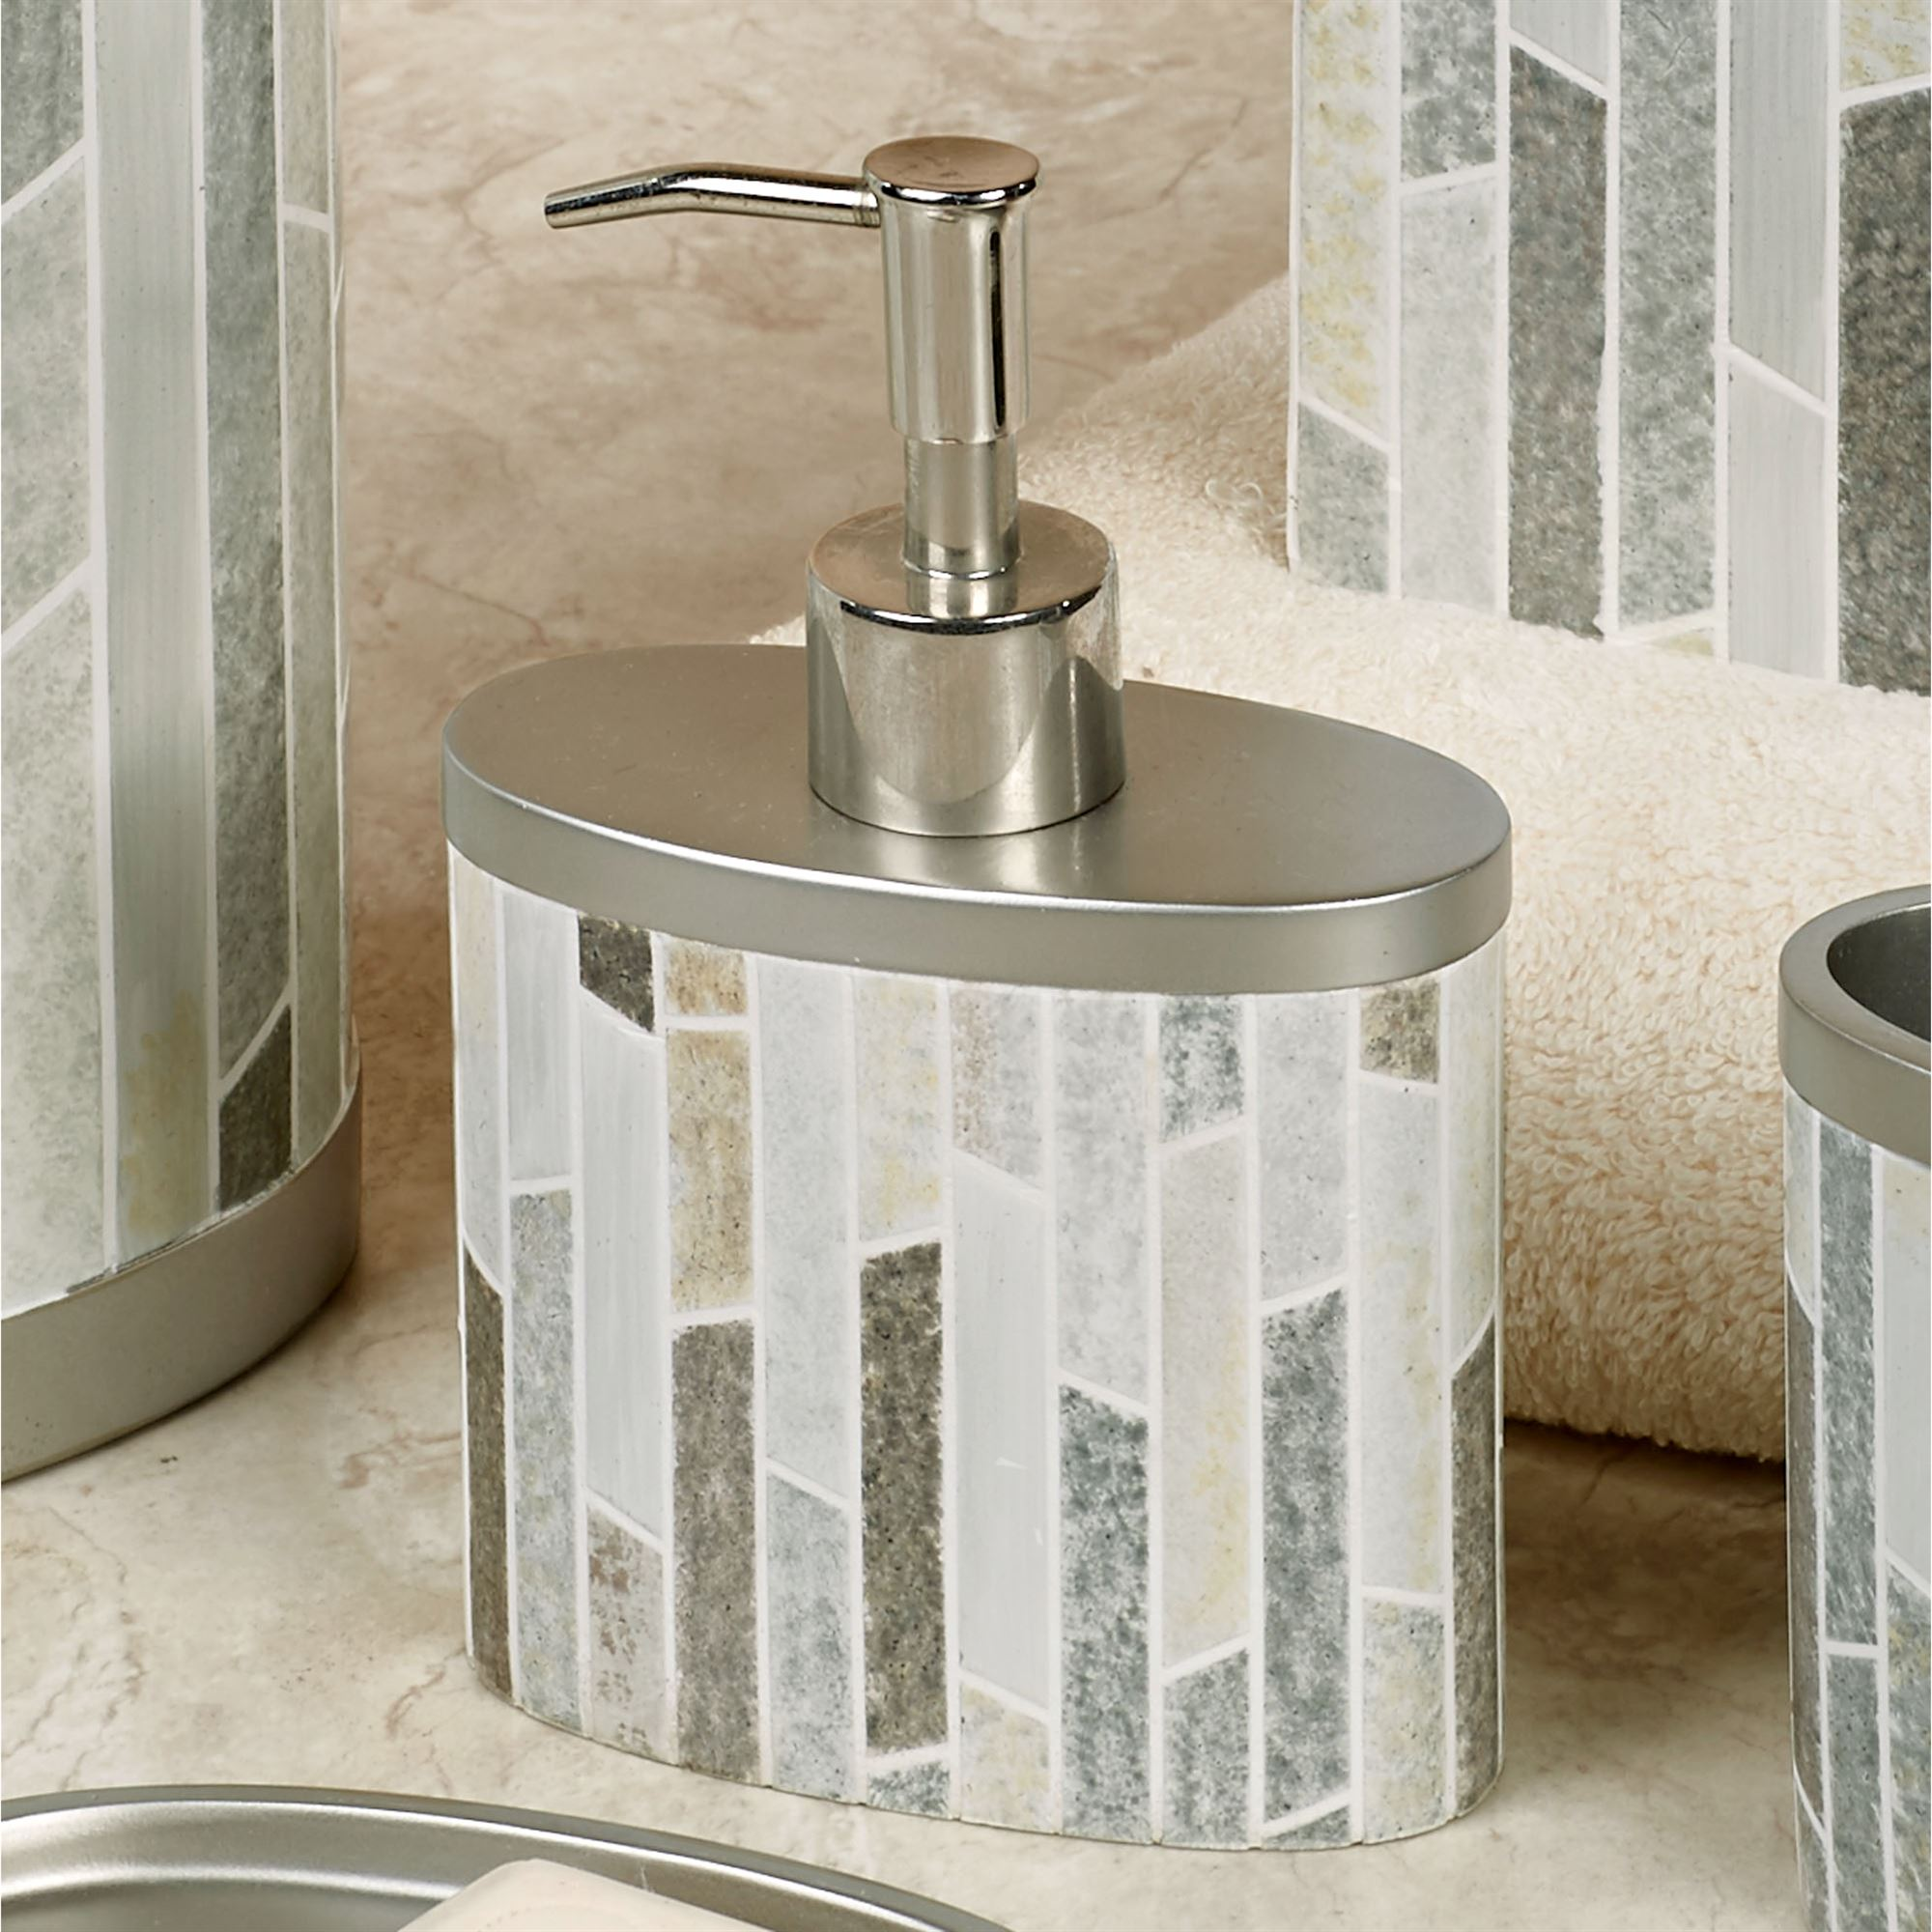 Bathroom Accessories Titania Contemporary Bath Accessories